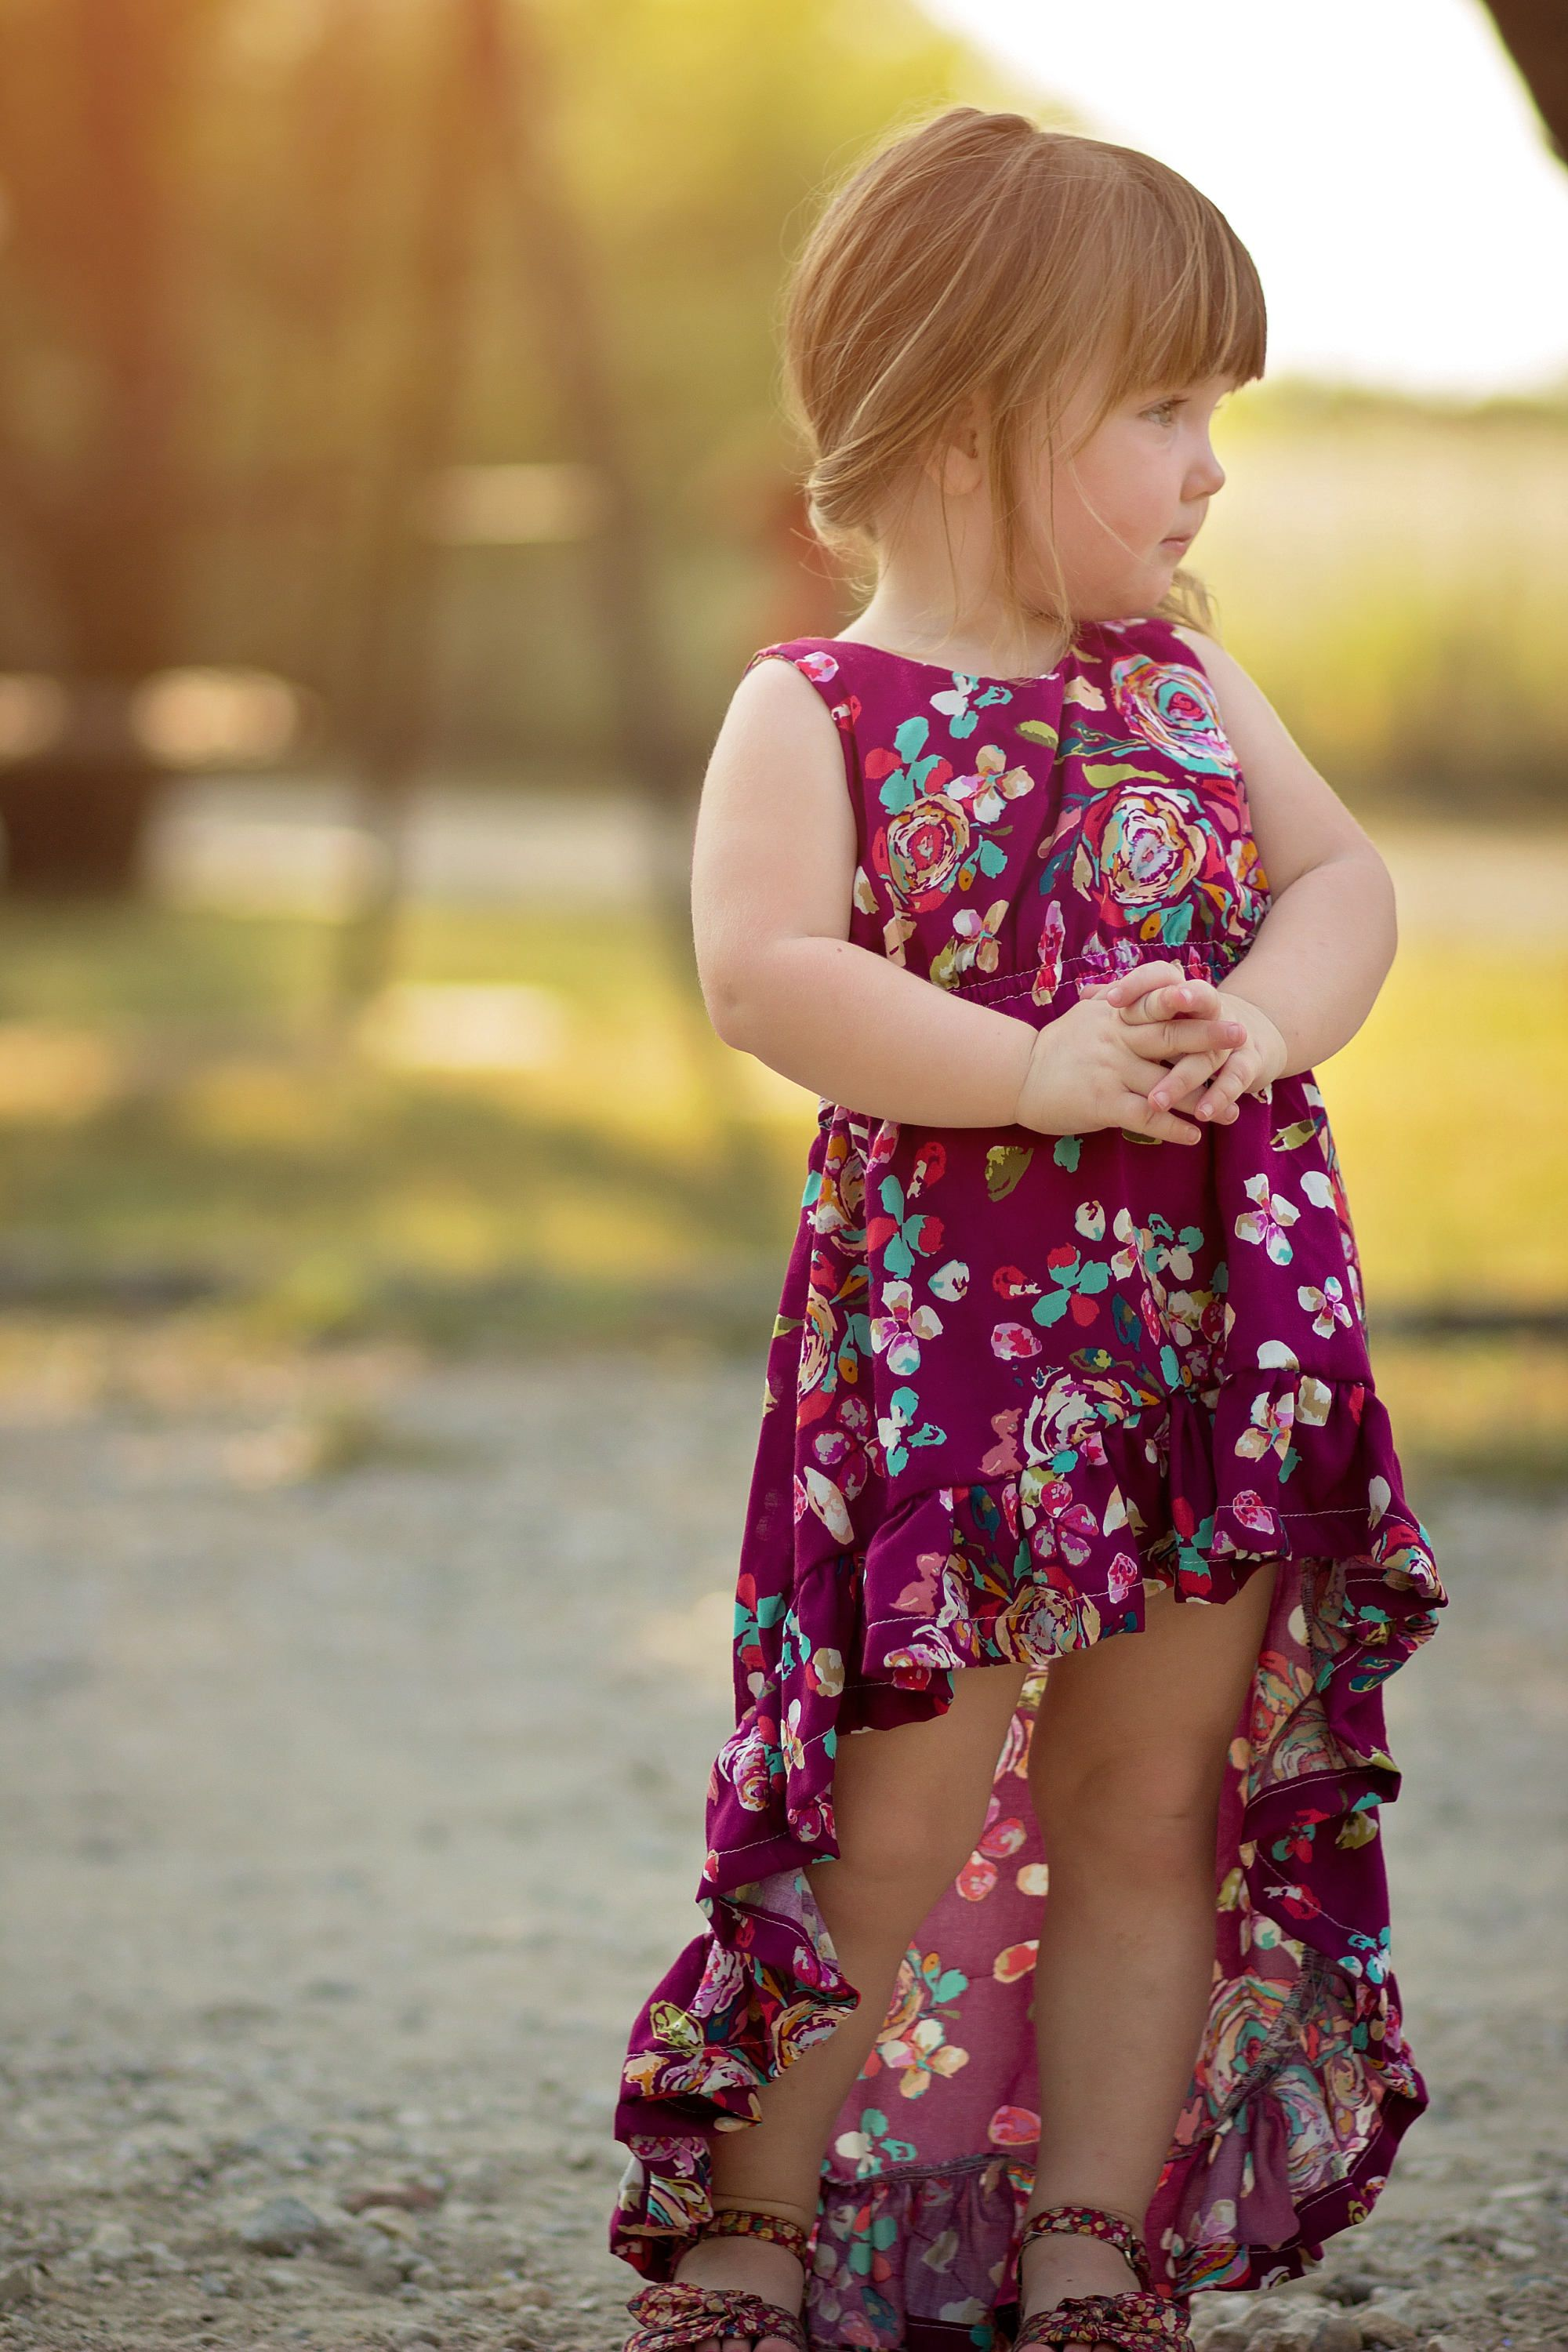 Top//Skirt Size 2T Details about  /Toddler Girl/'s 2 Piece Holiday Outfit